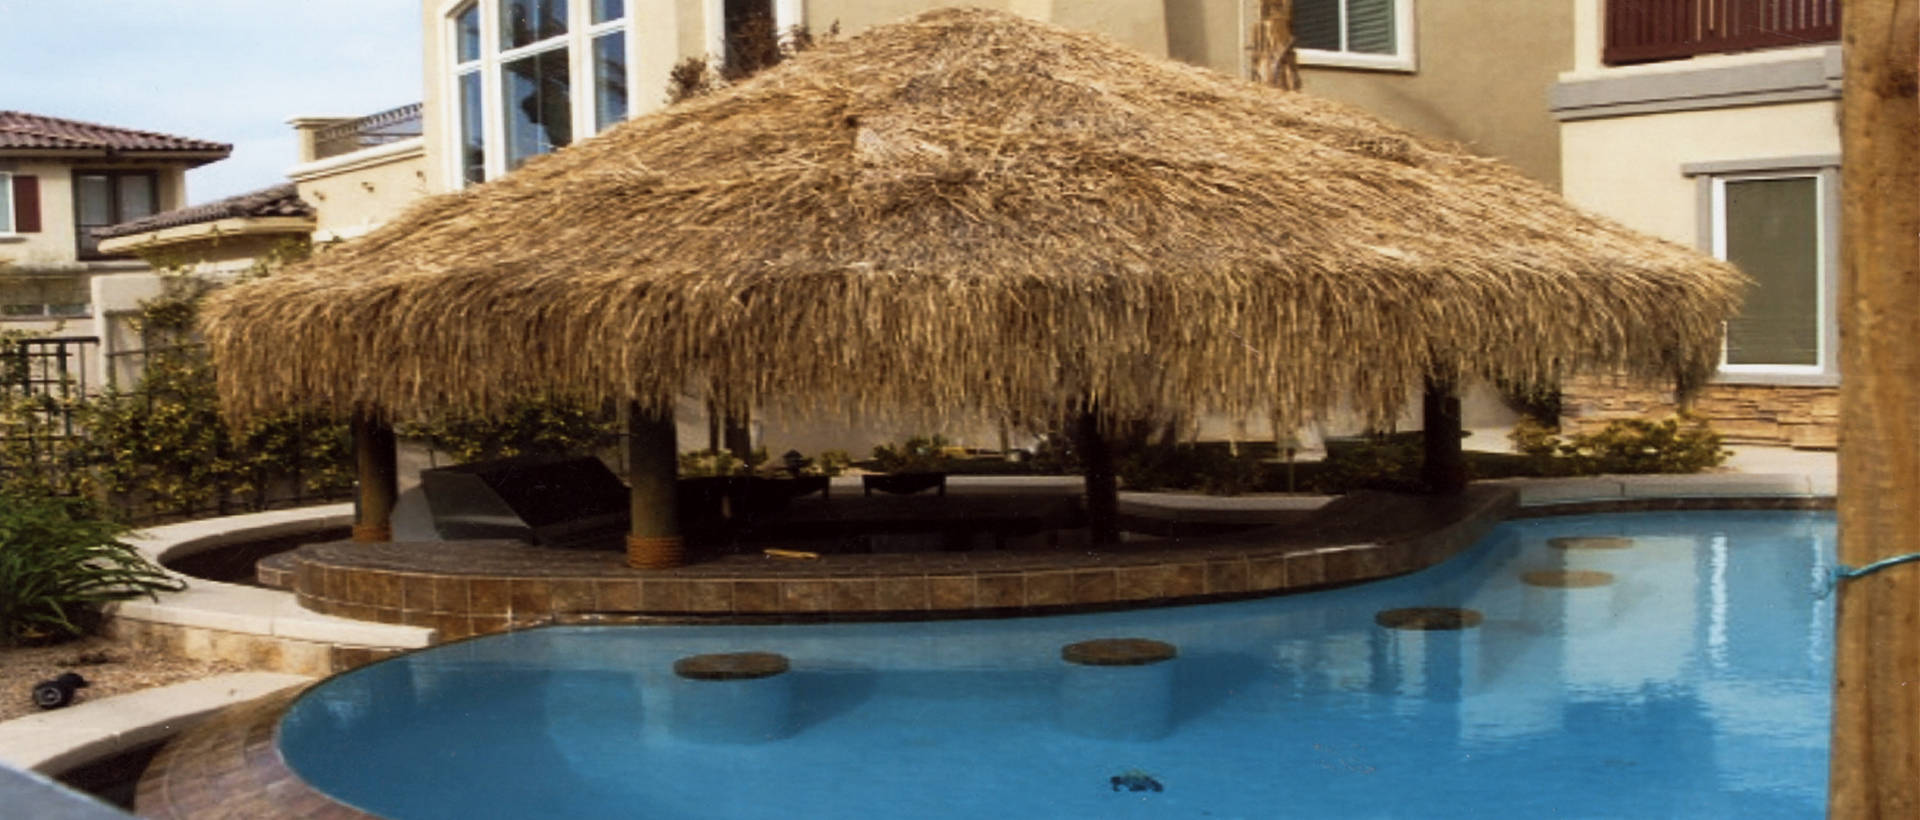 tropical-pool-with-palapa-and-water-seats-SLIDE-opt